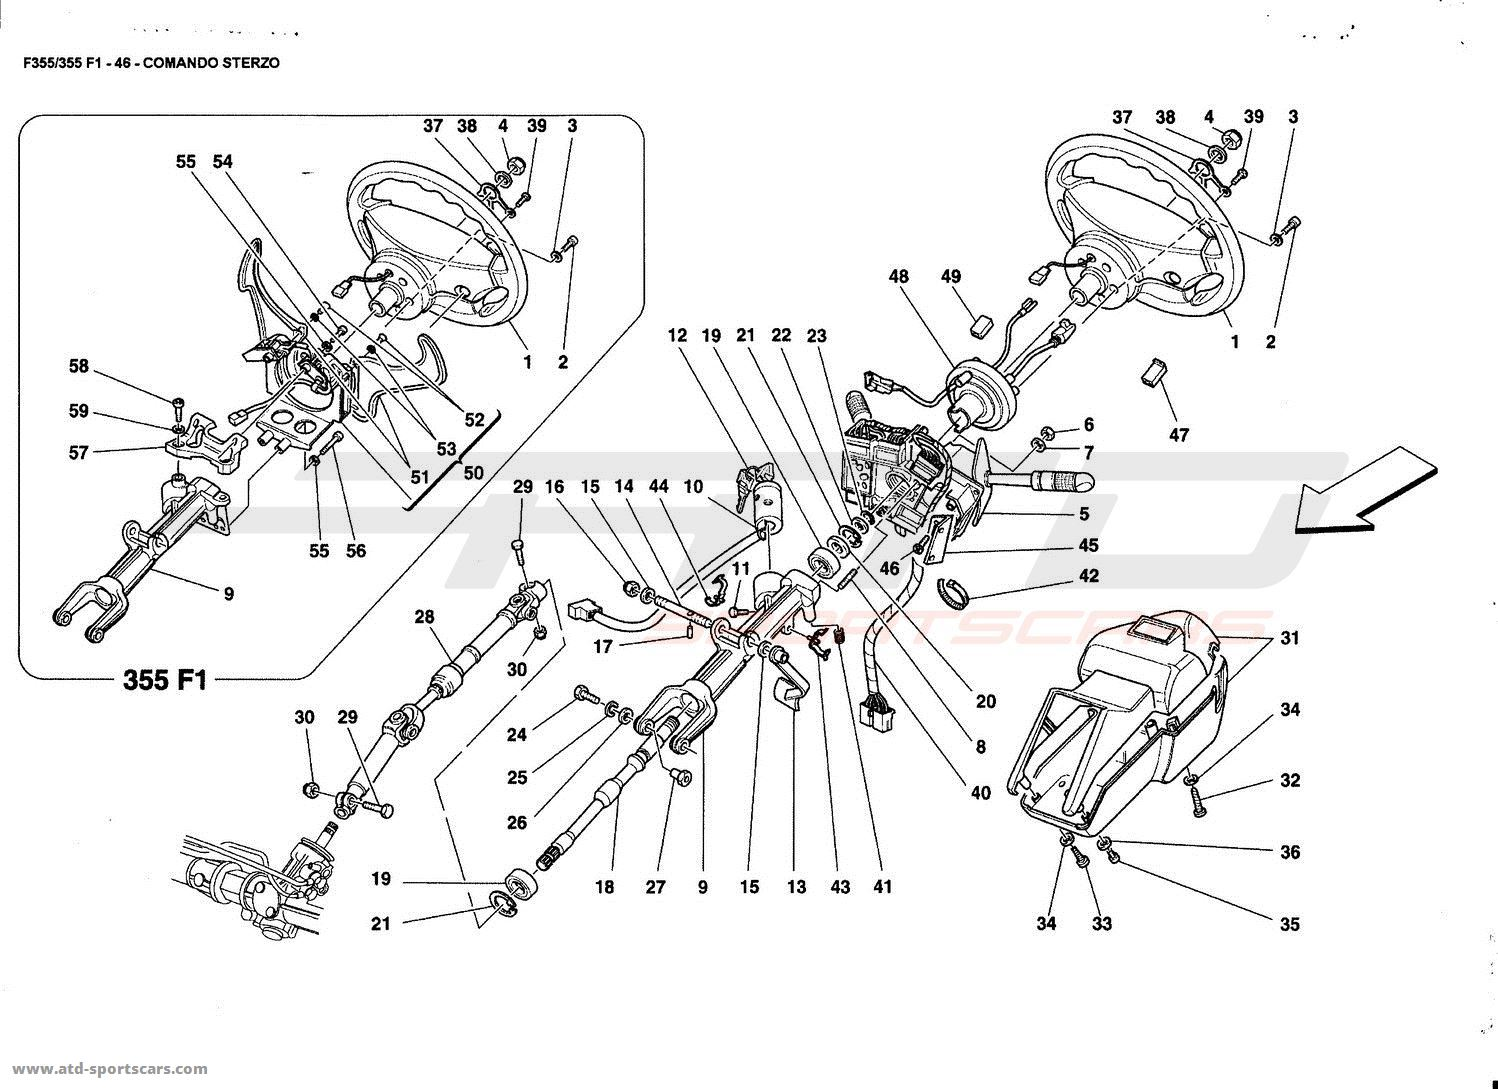 2014 Subaru Legacy Wiring Diagram further 2003 Subaru Wrx Timing Belt Replacement additionally Timing Belt Replacement 1998 Subaru Impreza further 2001 as well 2018 Subaru Wrx Sti Wiring Diagrams. on 2008 wrx timing belt replacement